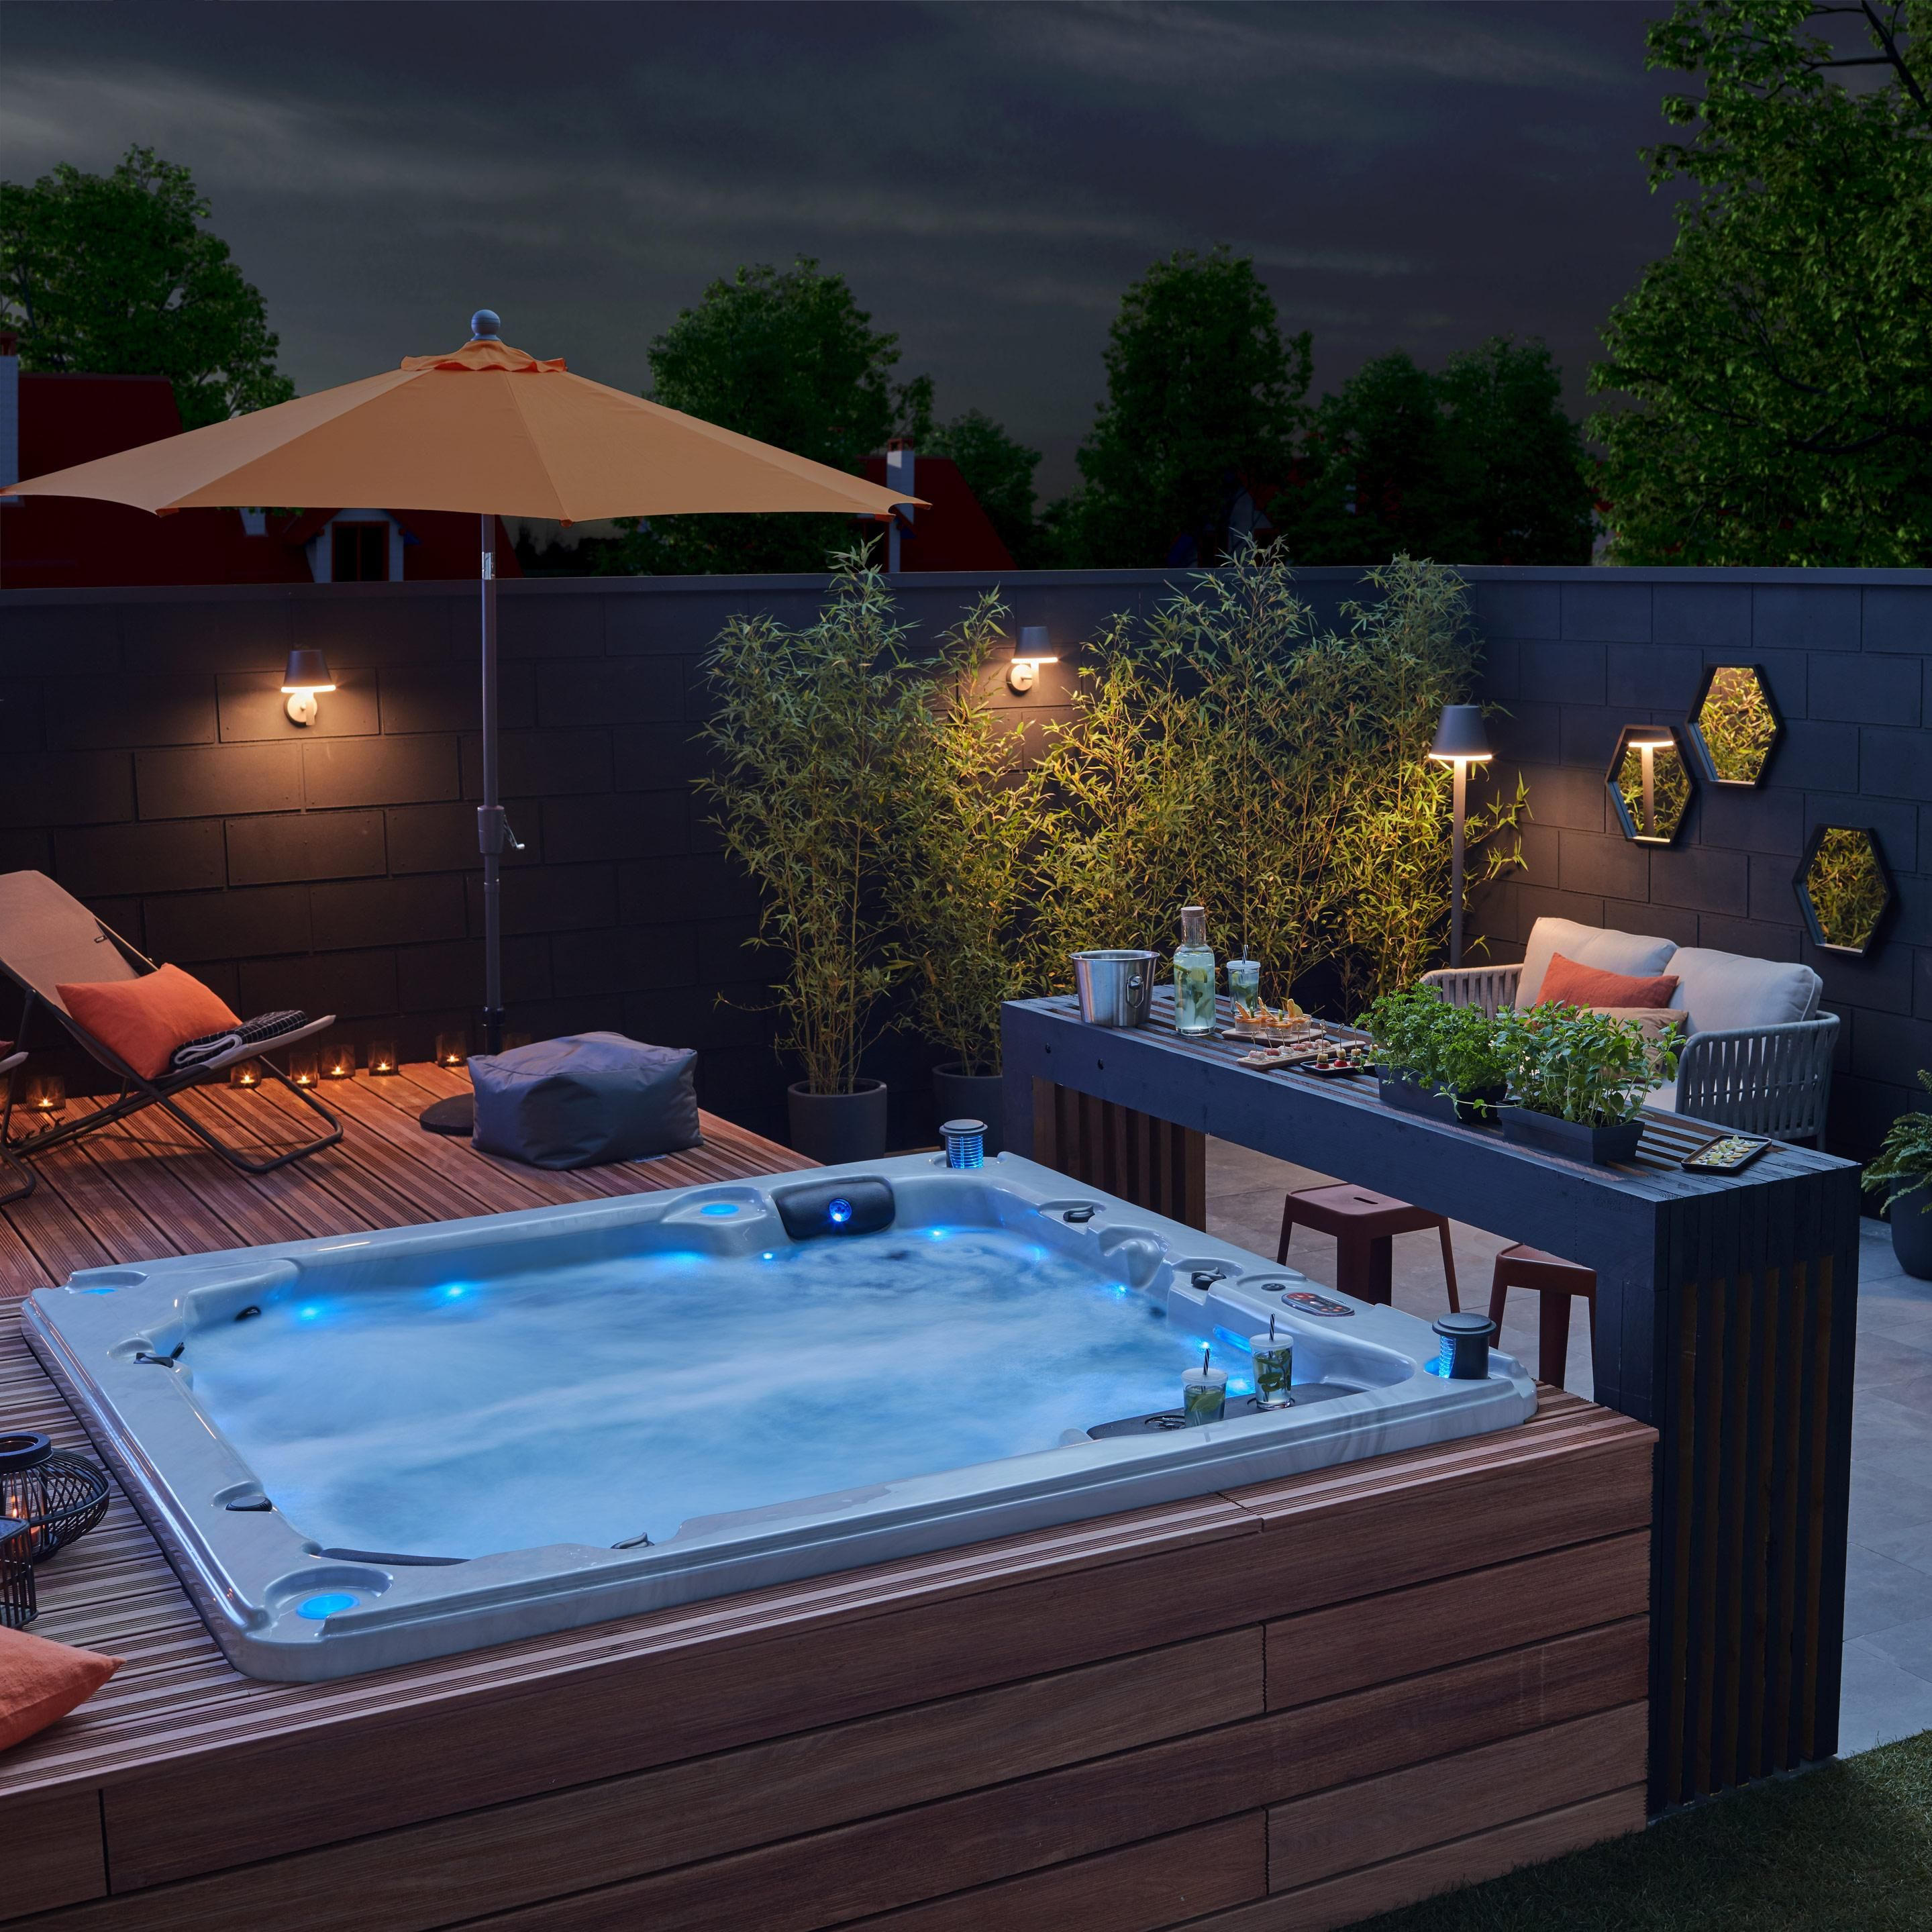 Spa De Massage Chocolat 6 Places Canadian Spa Thunder Bay En 2020 Jacuzzi Exterieur Amenagement Petite Terrasse Jacuzzi Jardin